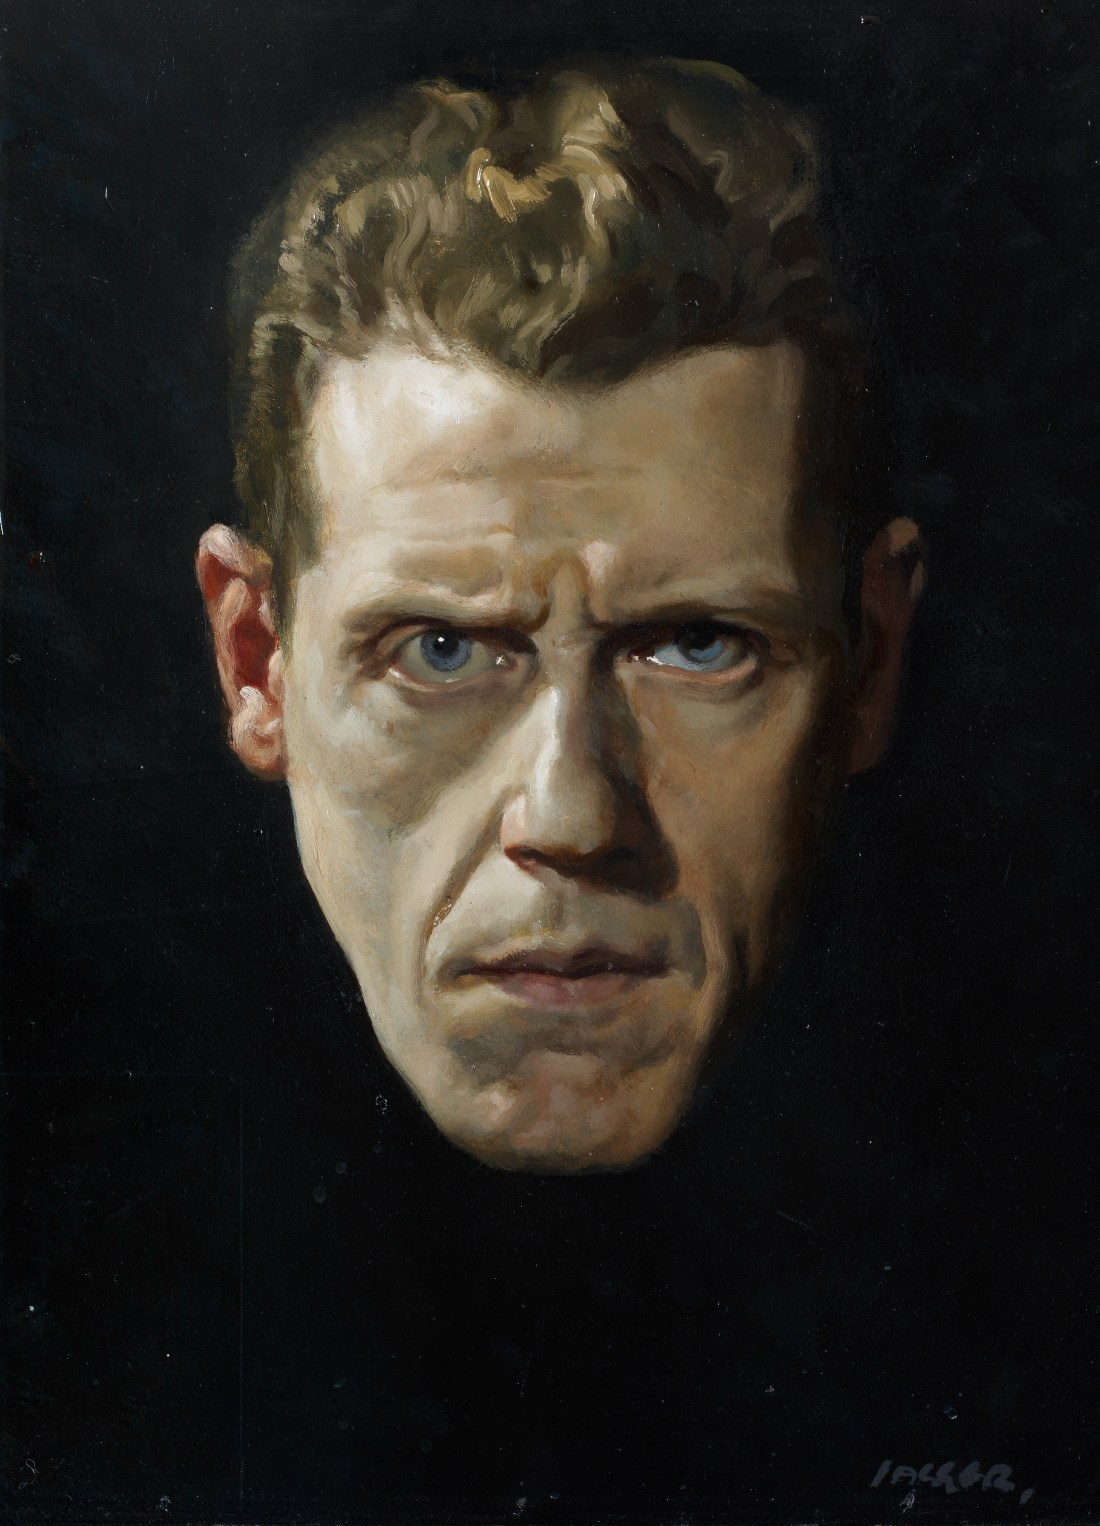 A self-portrait by David Jagger, painted in 1928.